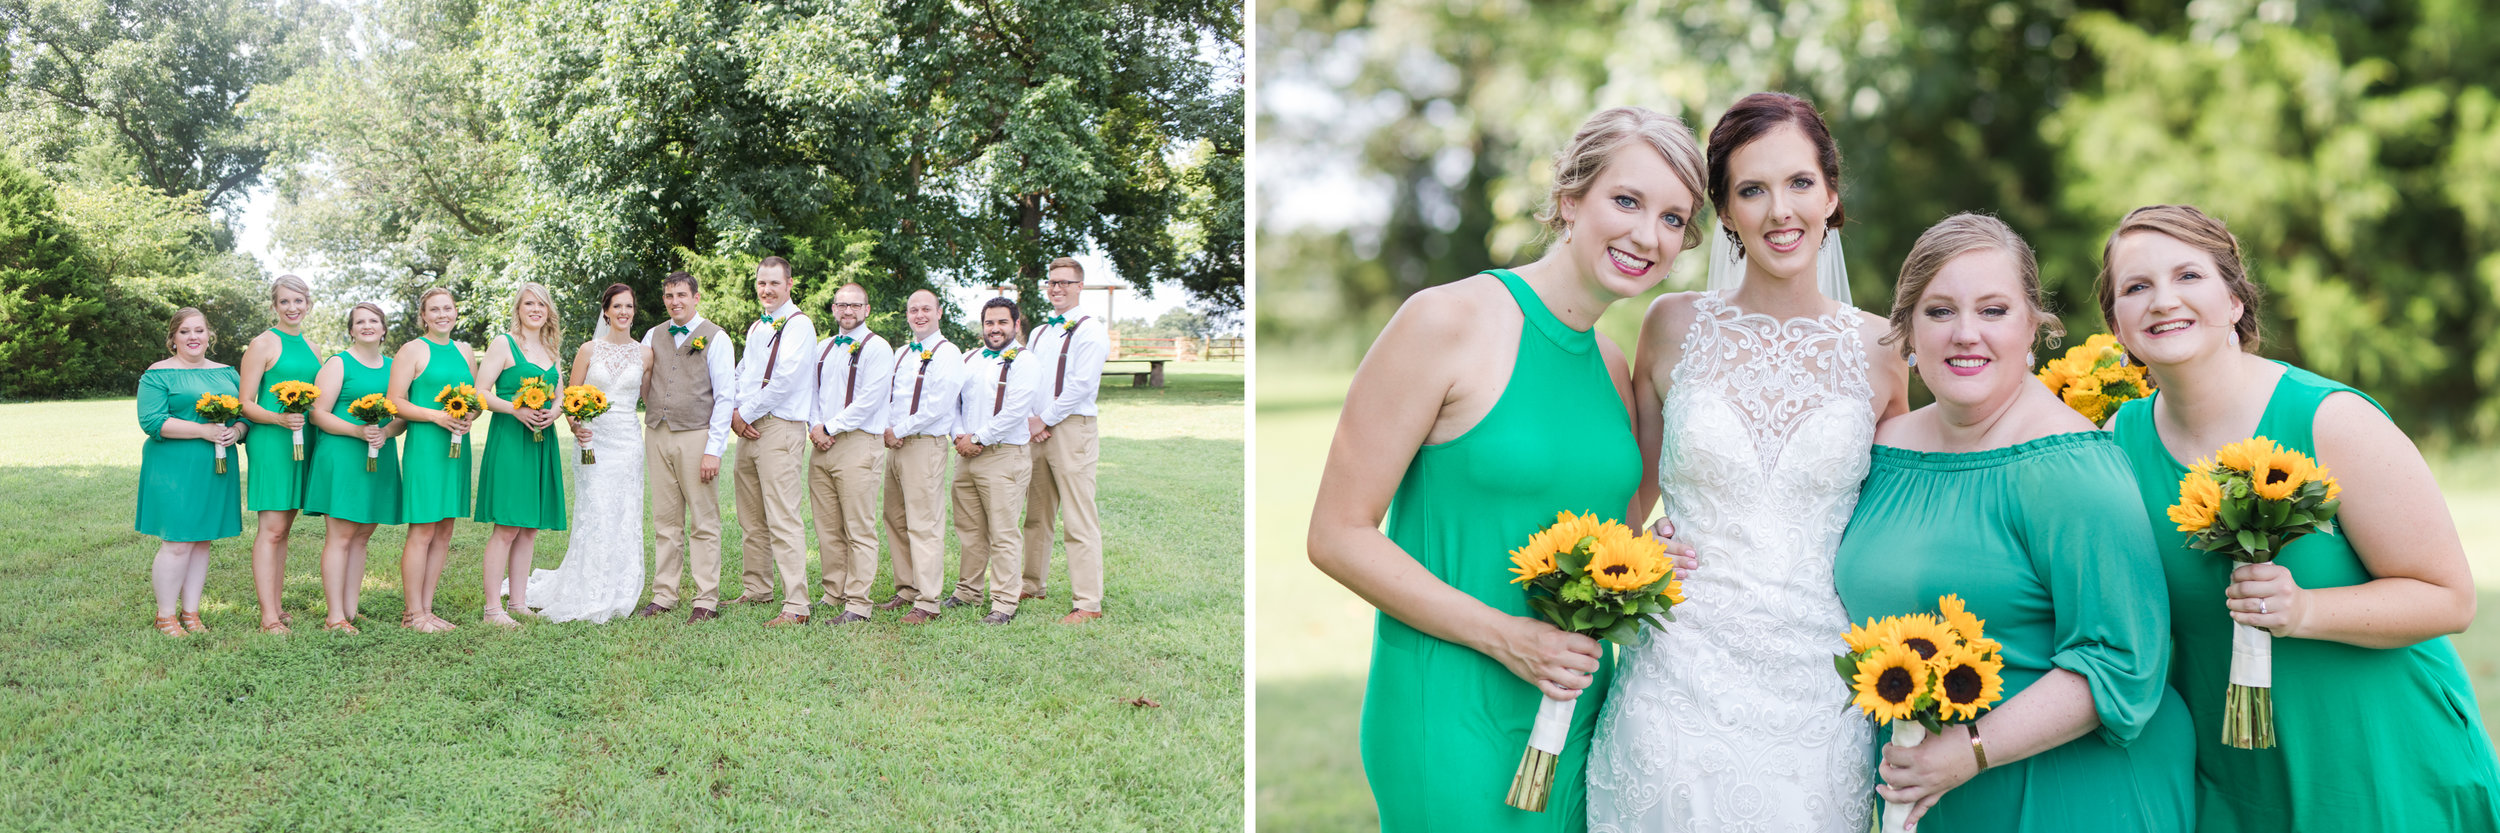 Bentonville Wedding Photographer Holland Barn 6.jpg